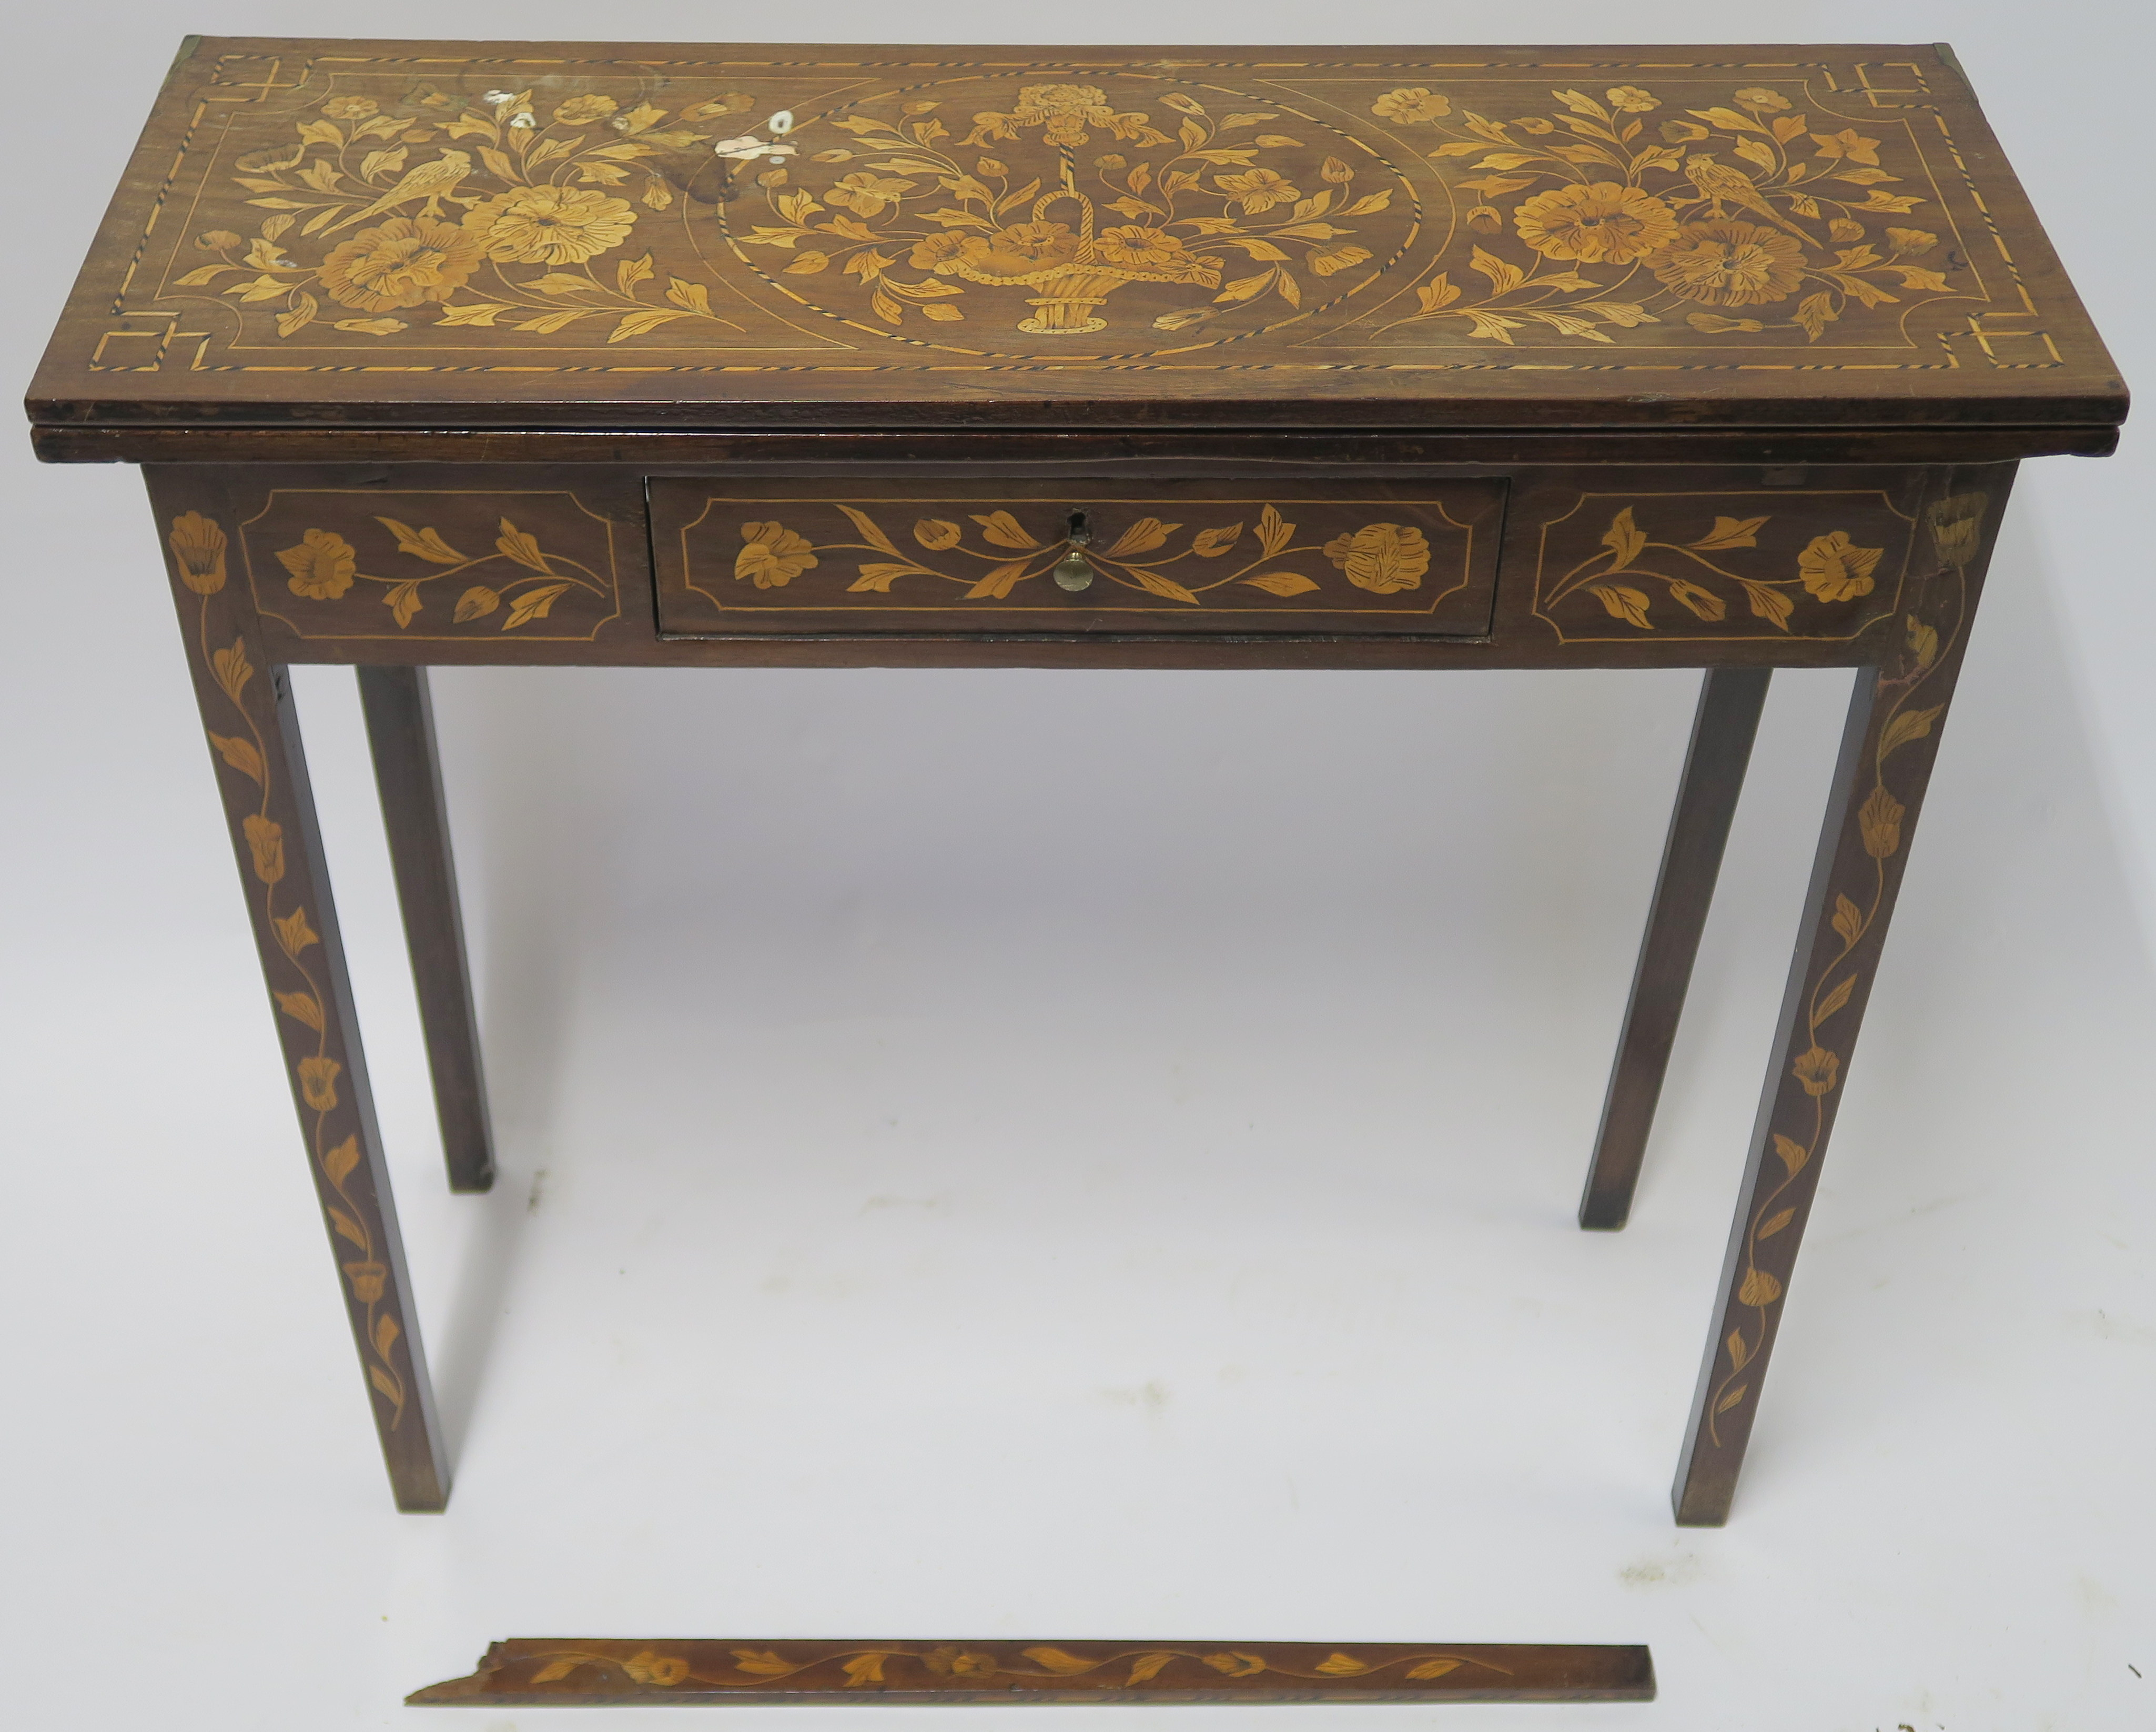 A DUTCH MARQUETRY WALNUT GAMES TABLE decorated with a basket of flowers, birds and scrolling